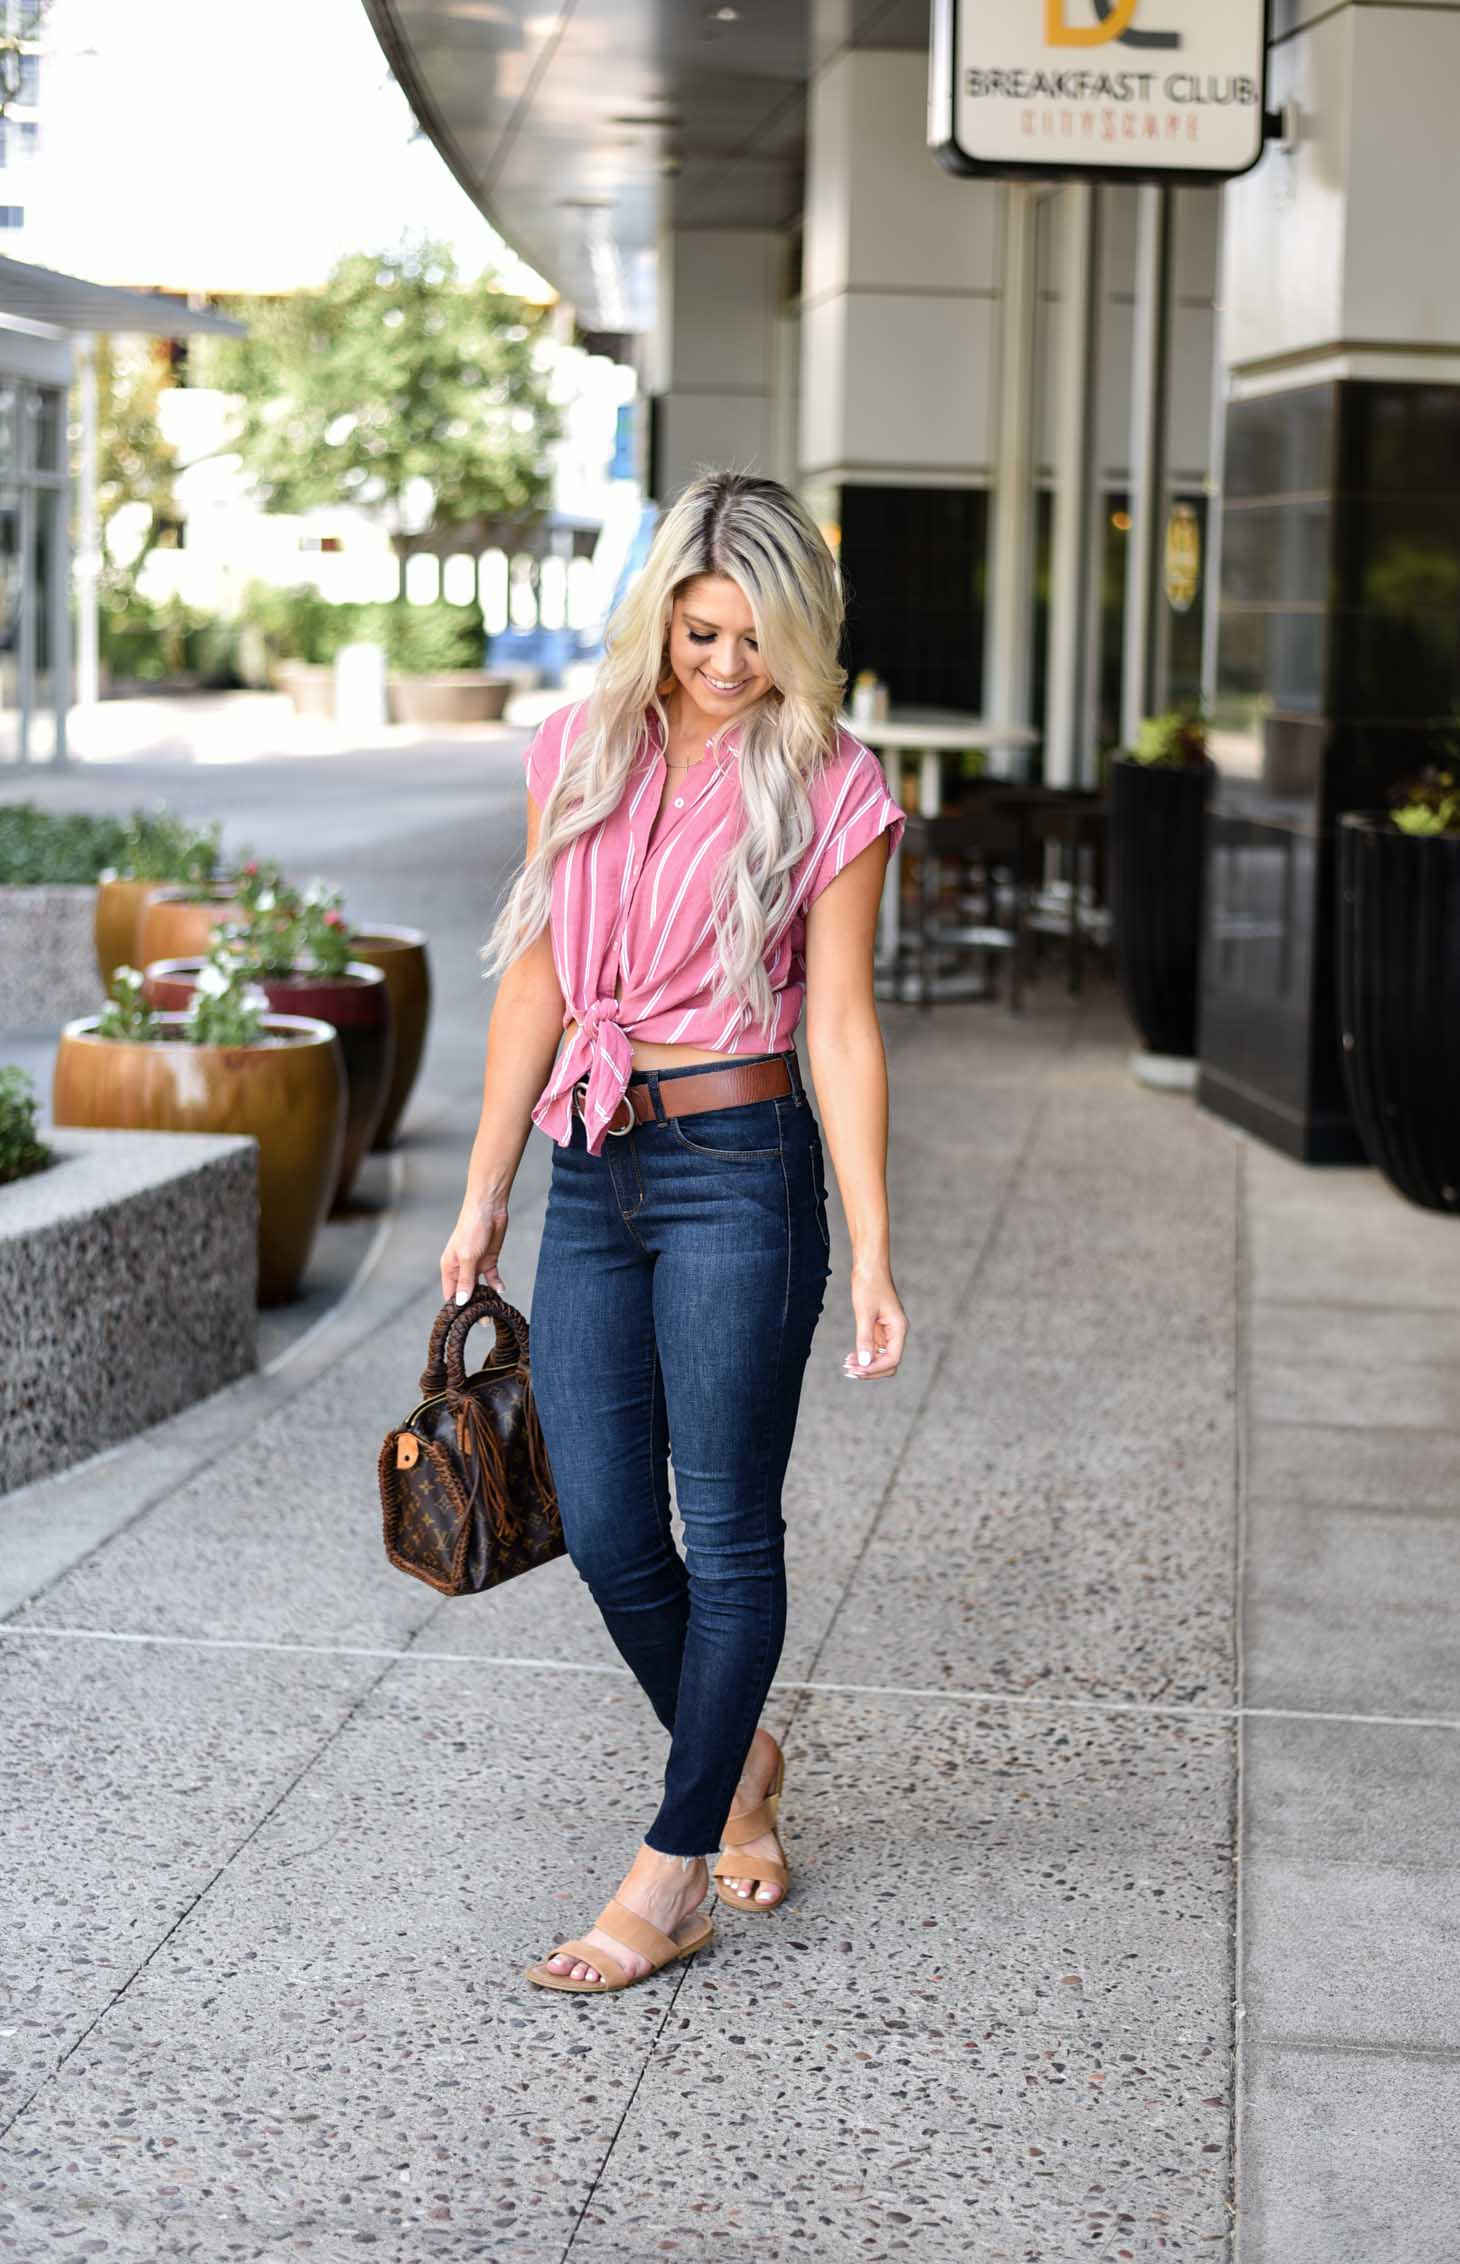 Erin Elizabeth of Wink and a Twirl shares the perfect transitional and casual look from summer to fall